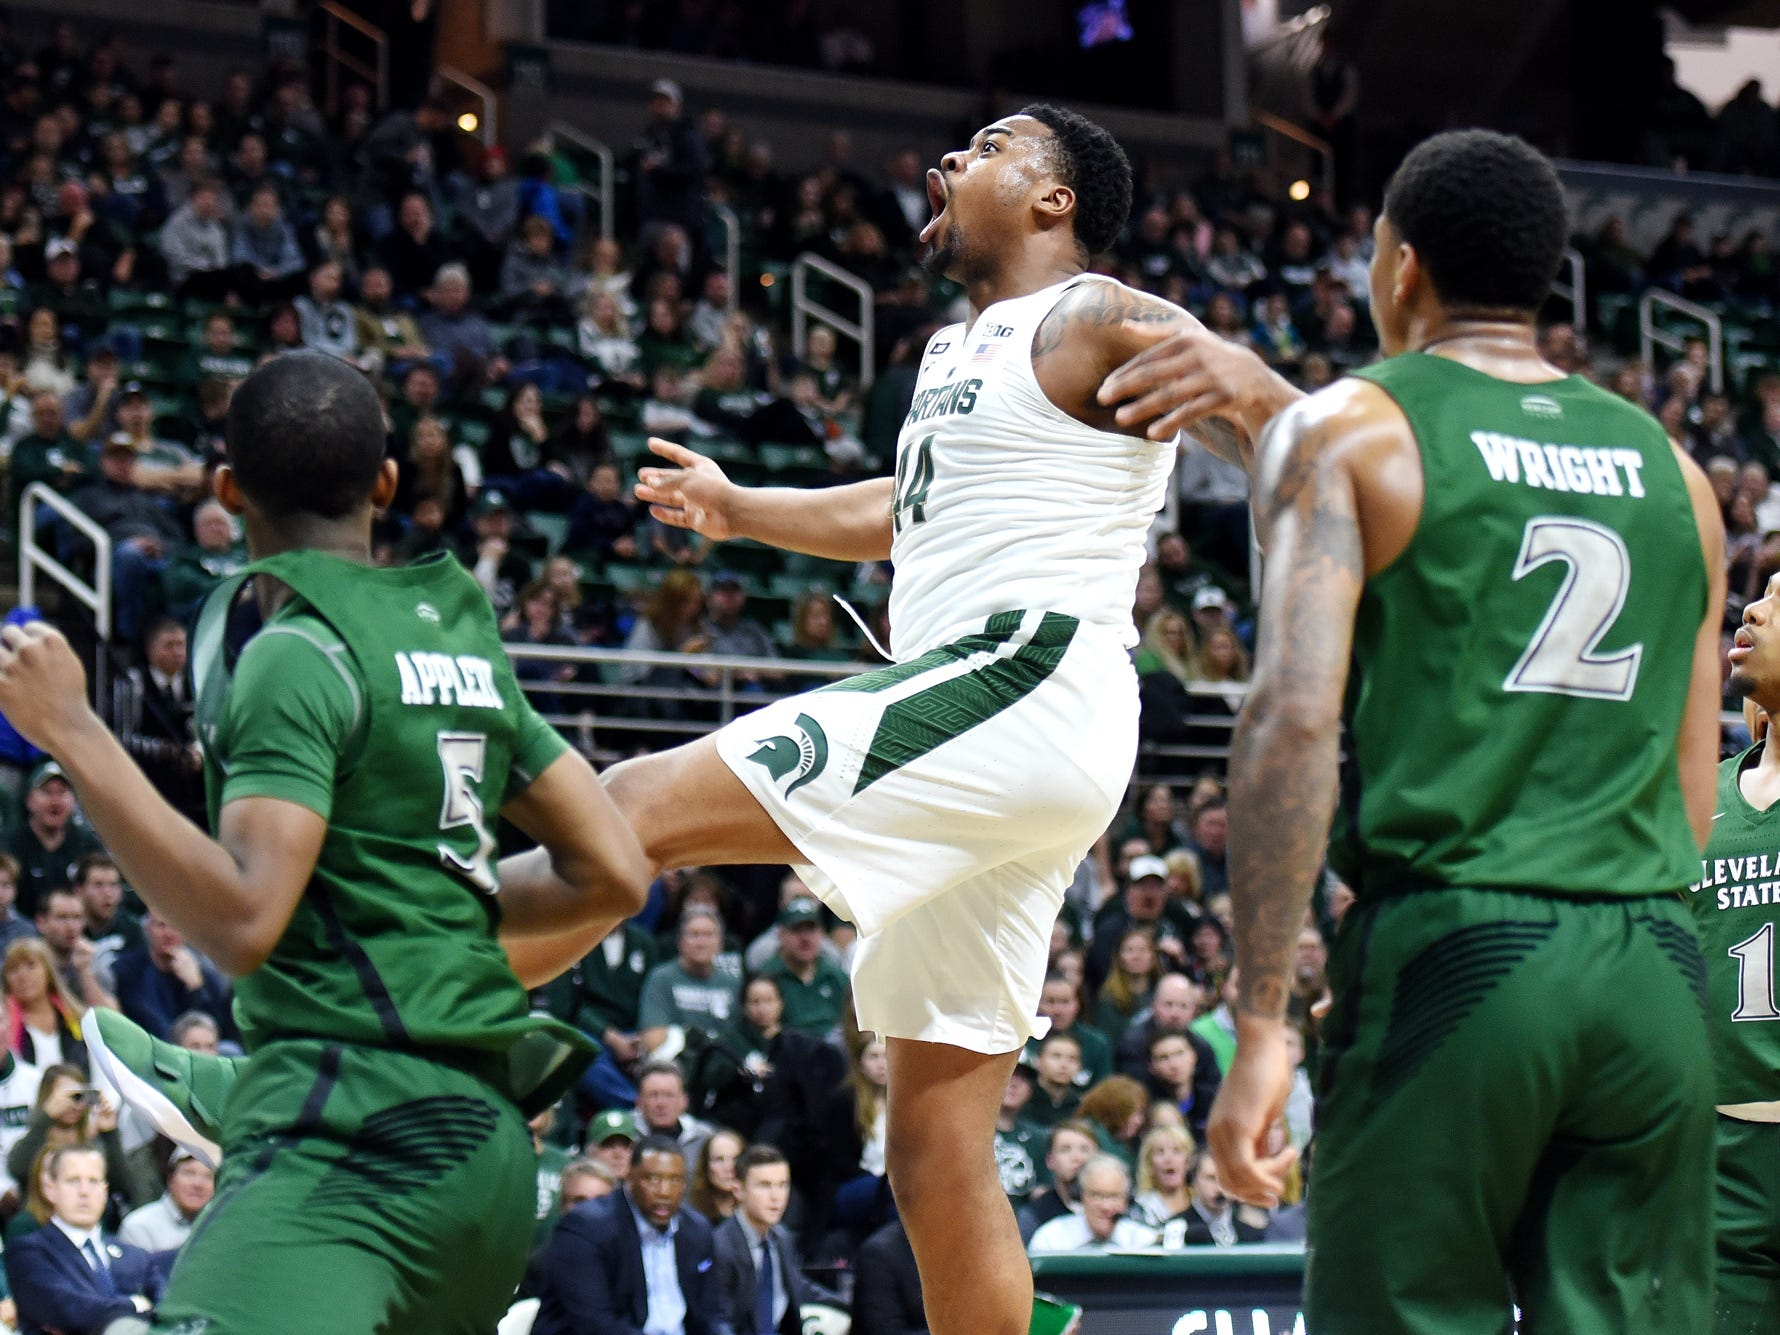 Michigan State's Nick Ward, center, reacts after throwing down a dunk during the second half on Friday, Dec. 29, 2017, at the Breslin Center in East Lansing. The Spartans won 111-61.